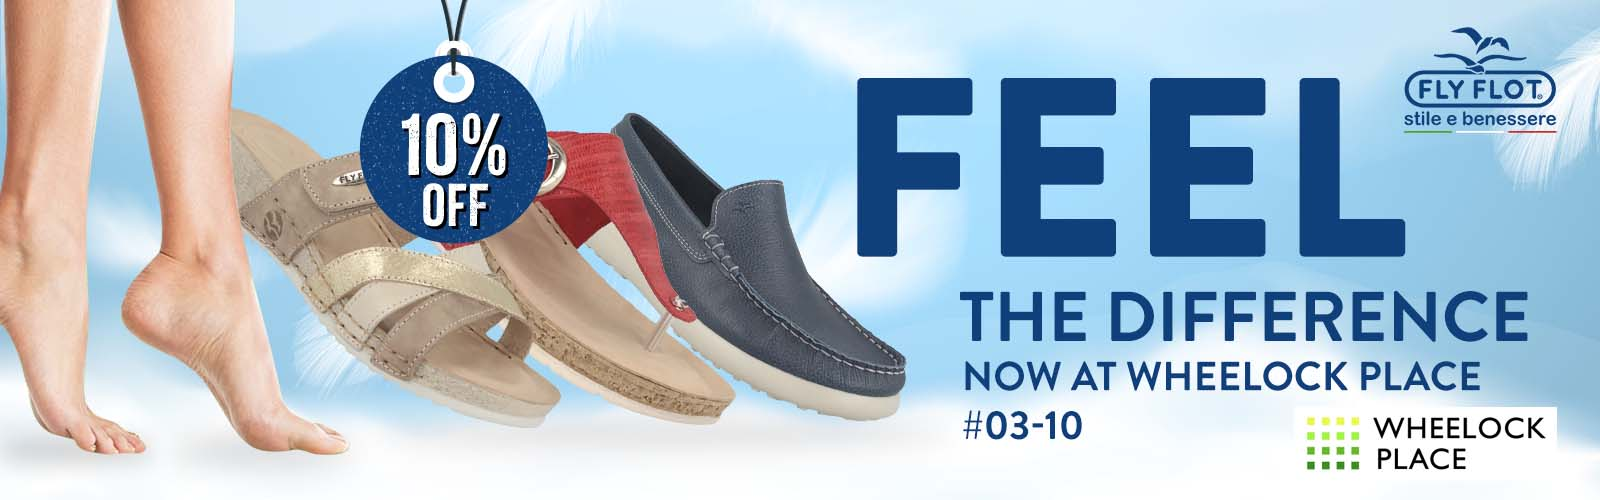 Fly Flot footwear from Italy now available at Orchard Road